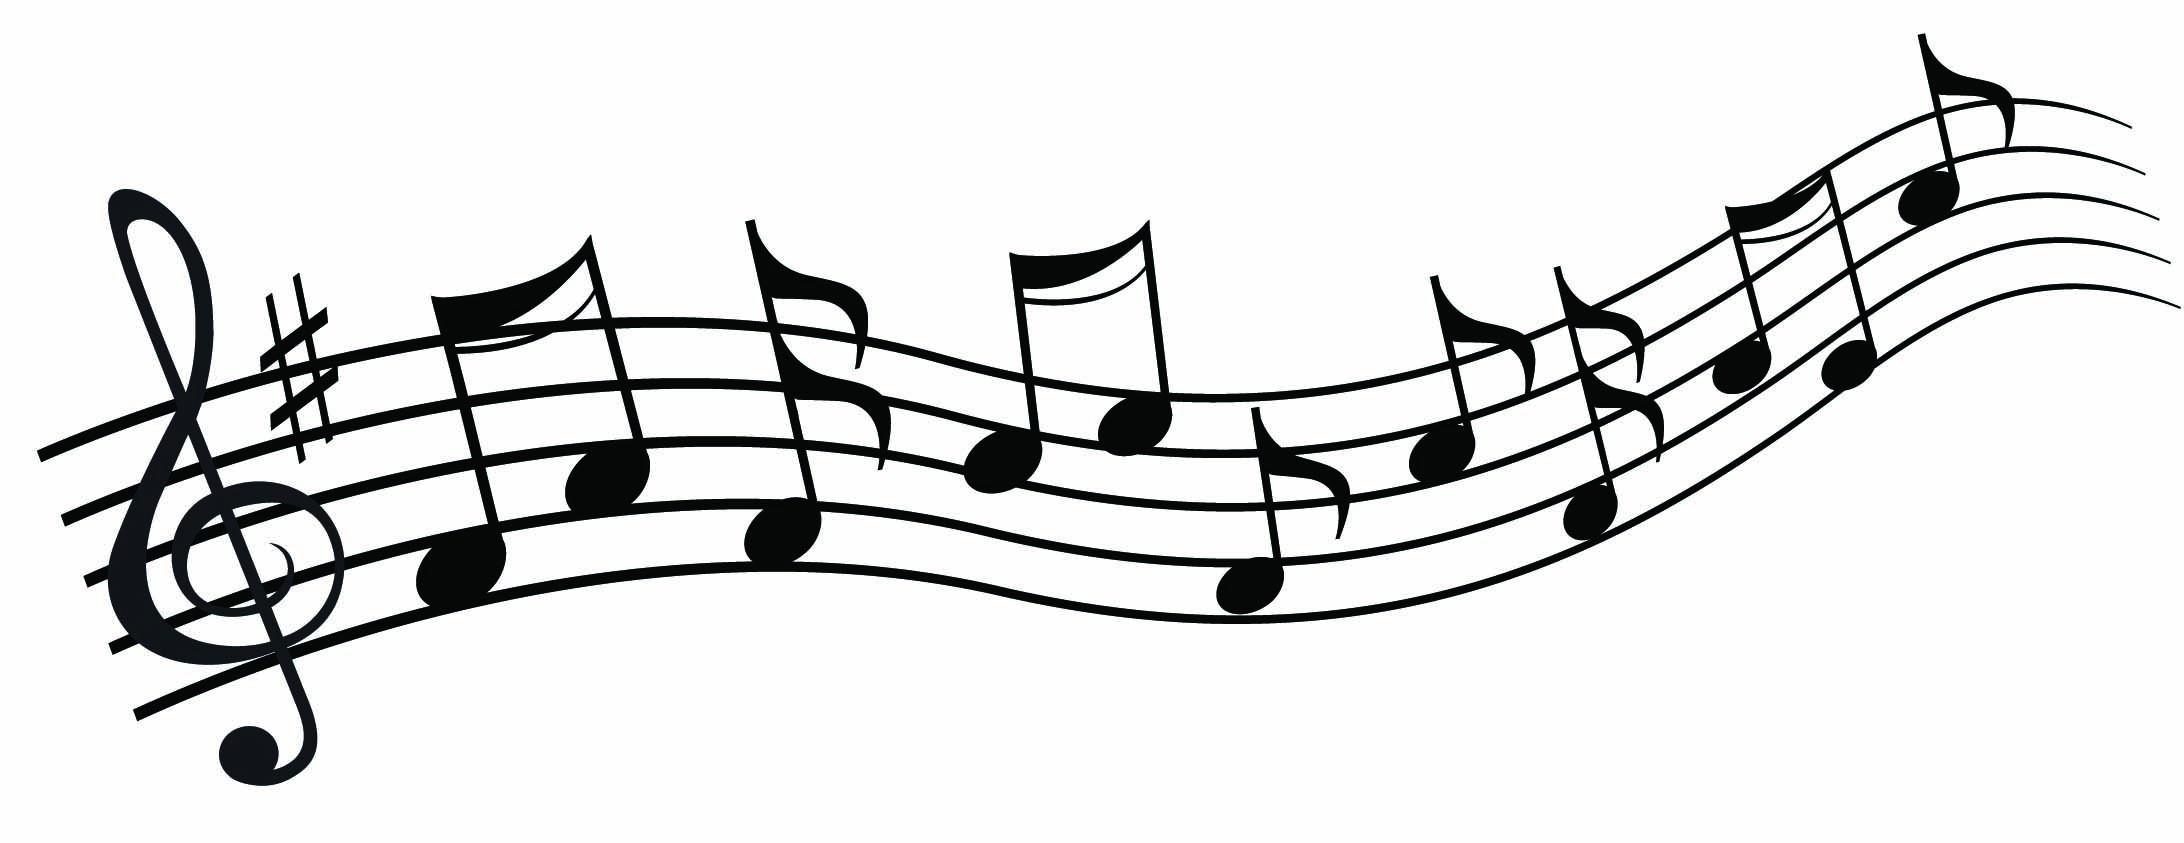 2184x843 Make Music Clipart